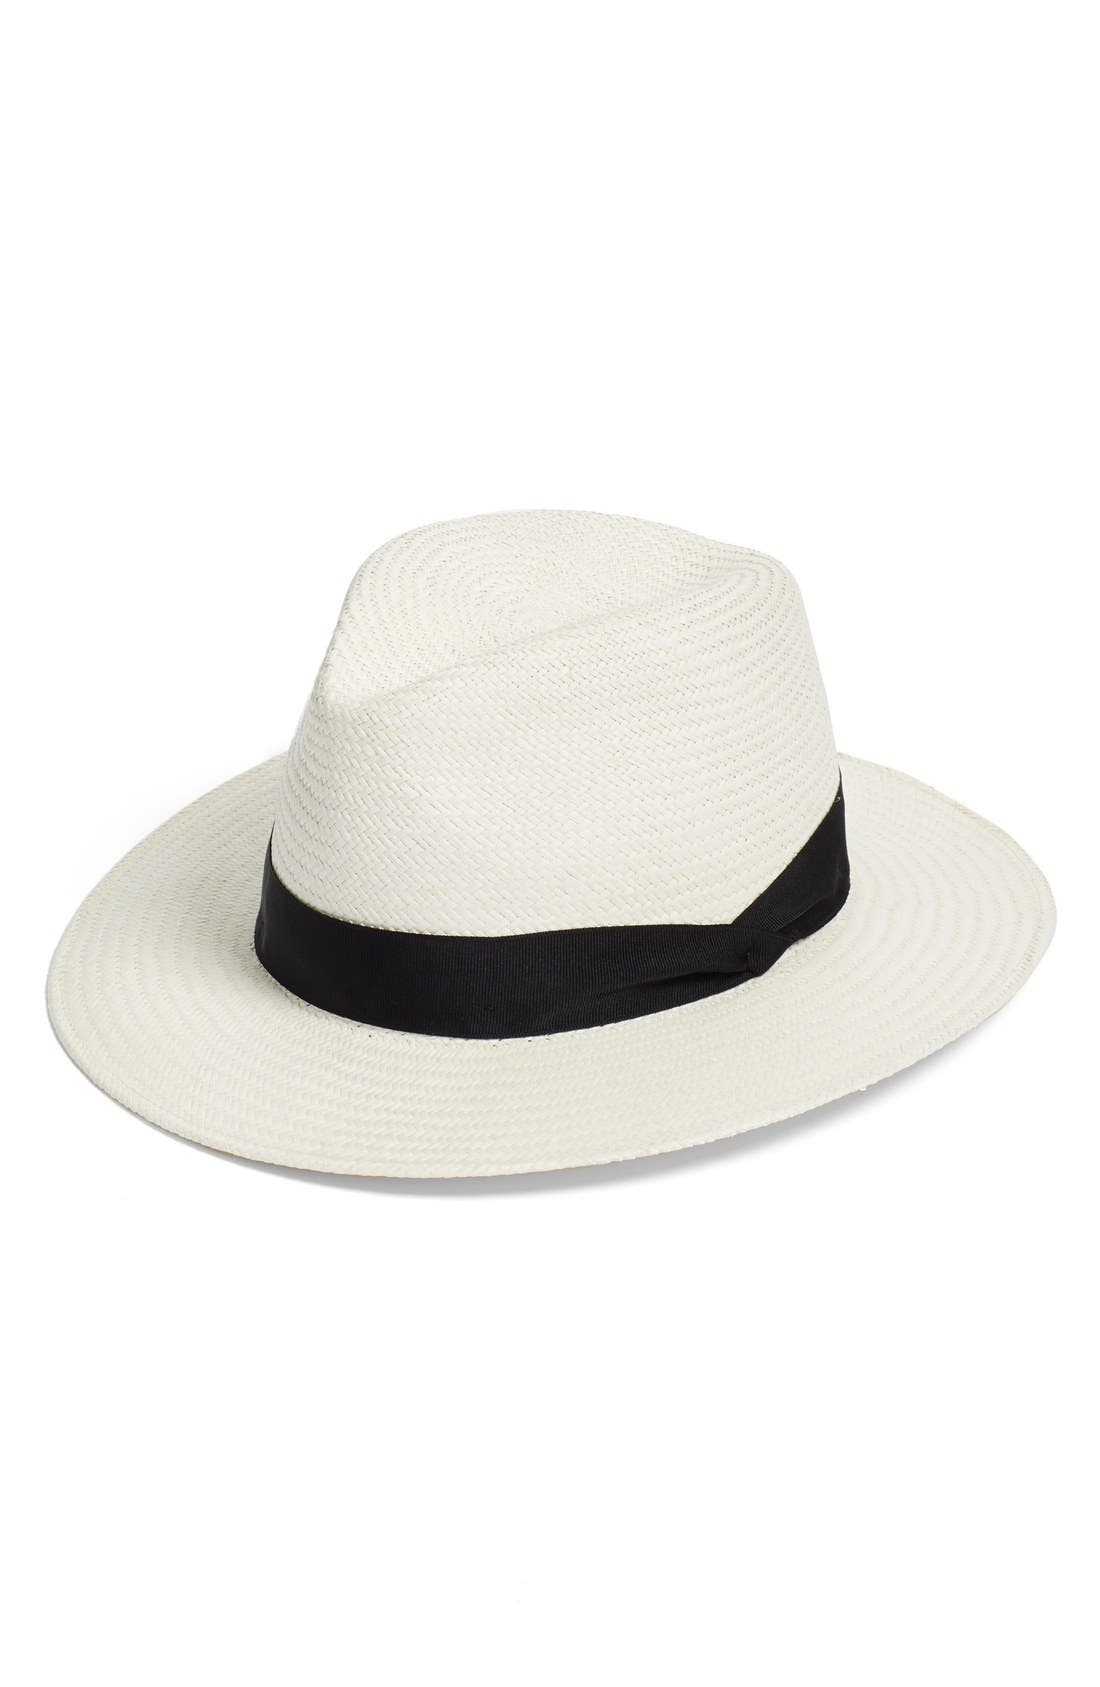 Main Image - rag & bone Straw Panama Hat